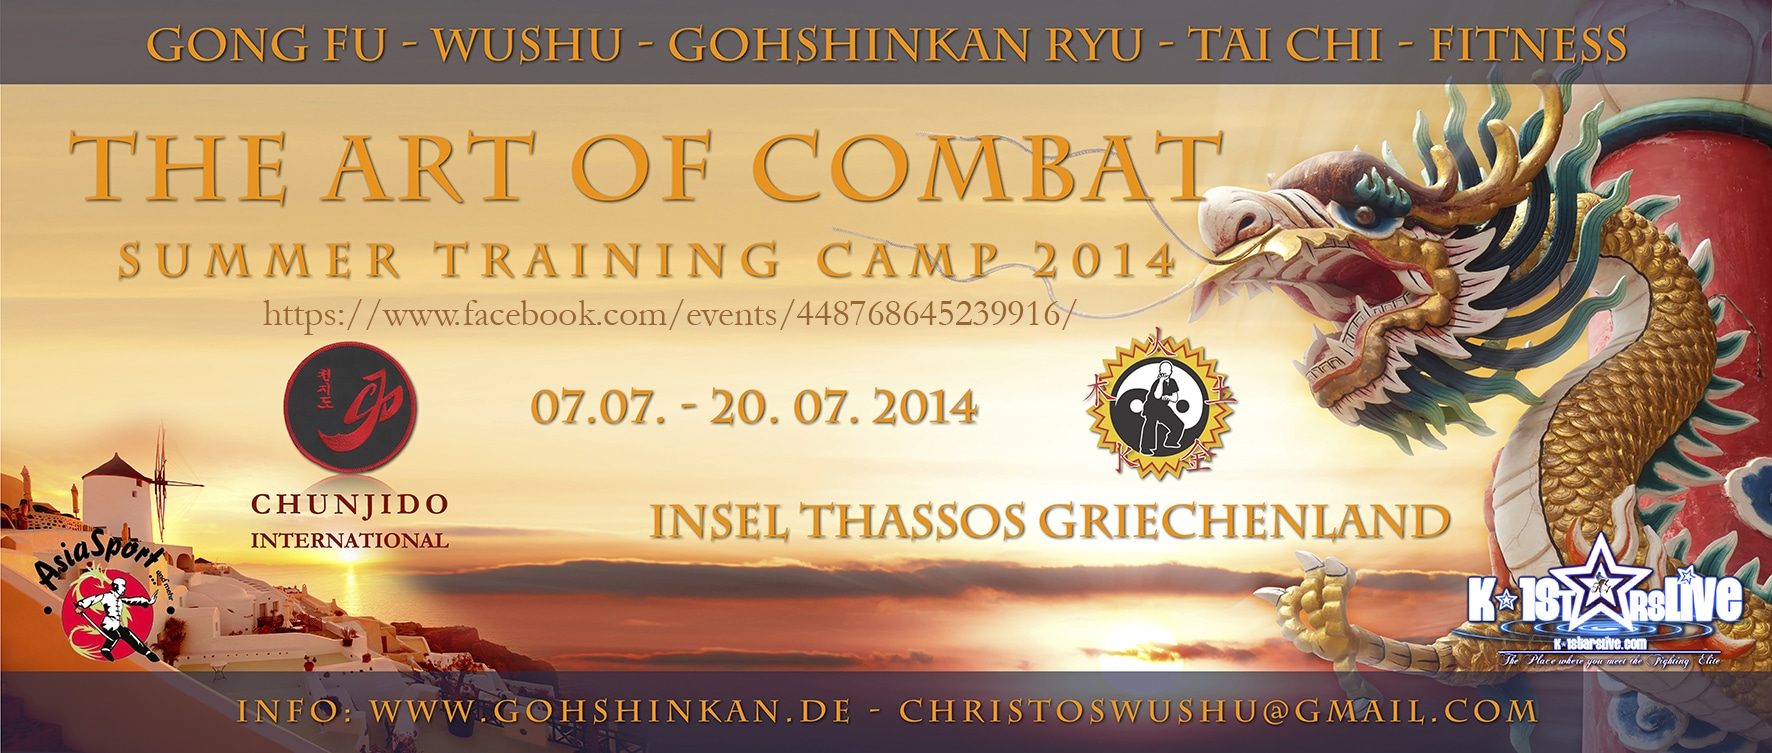 The Art of combat camp banner Kopie Kopie